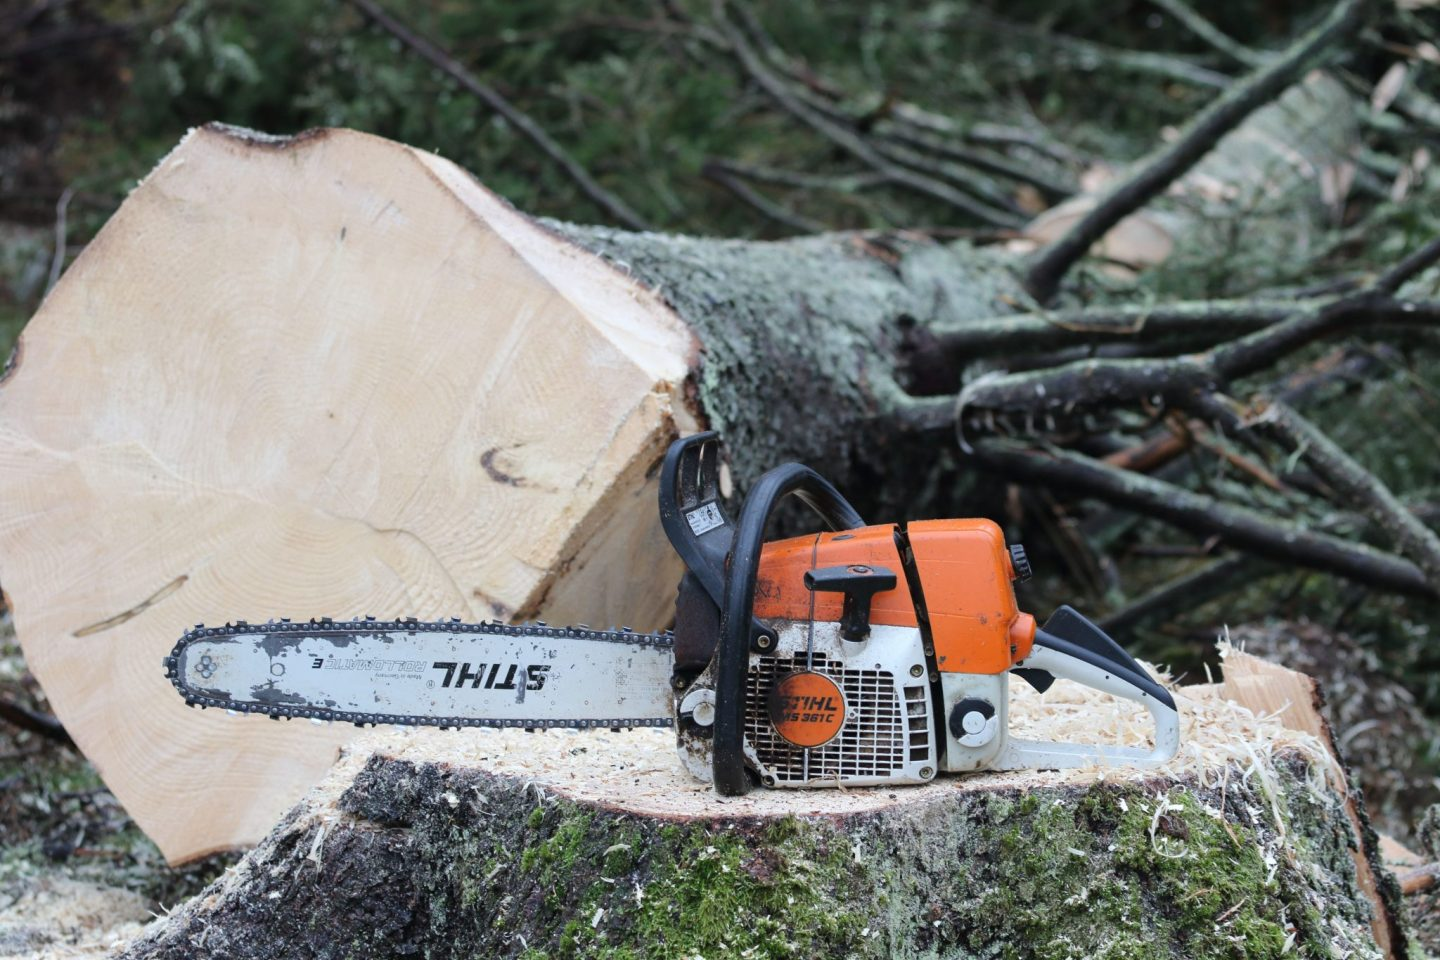 A man and his chainsaw – Stihl MS 361 C